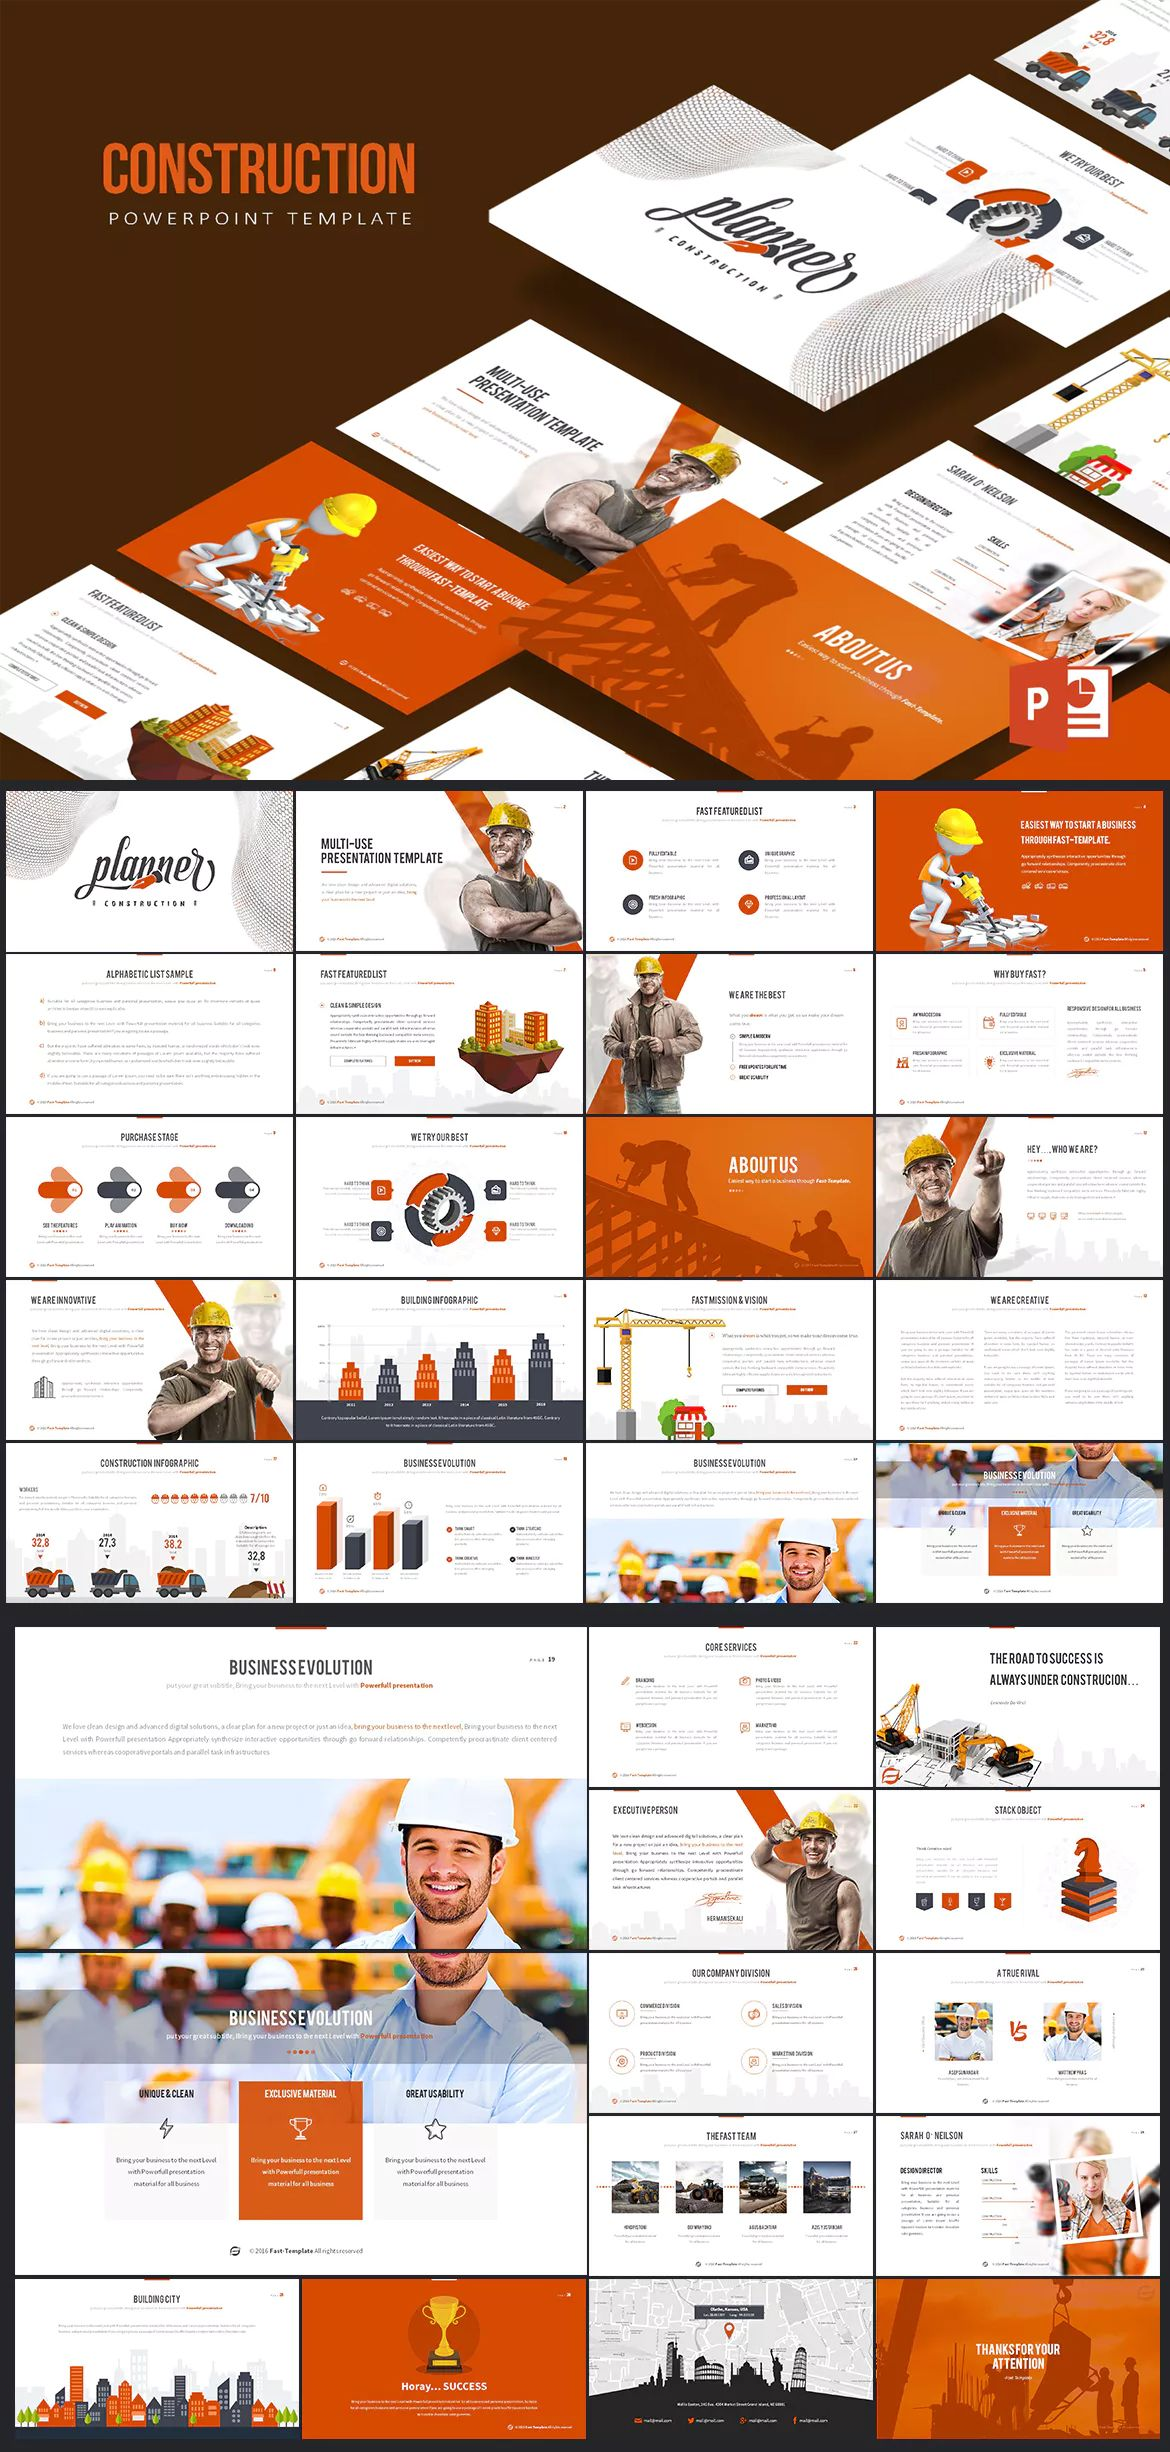 Construction powerpoint presentationtemplate powerpoint construction powerpoint presentationtemplate alramifo Images